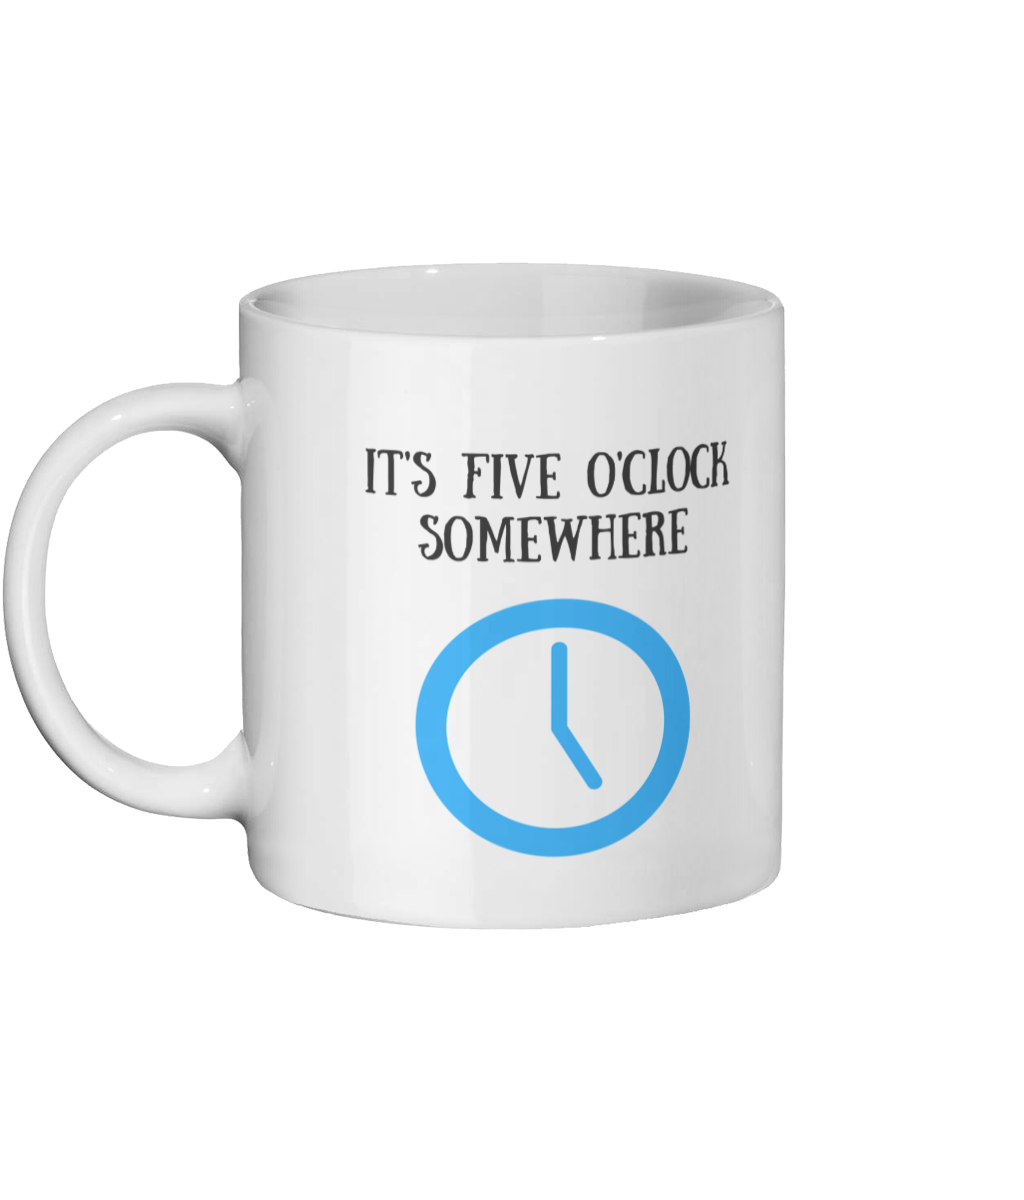 It's Five O'Clock Somewhere Mug Left-side